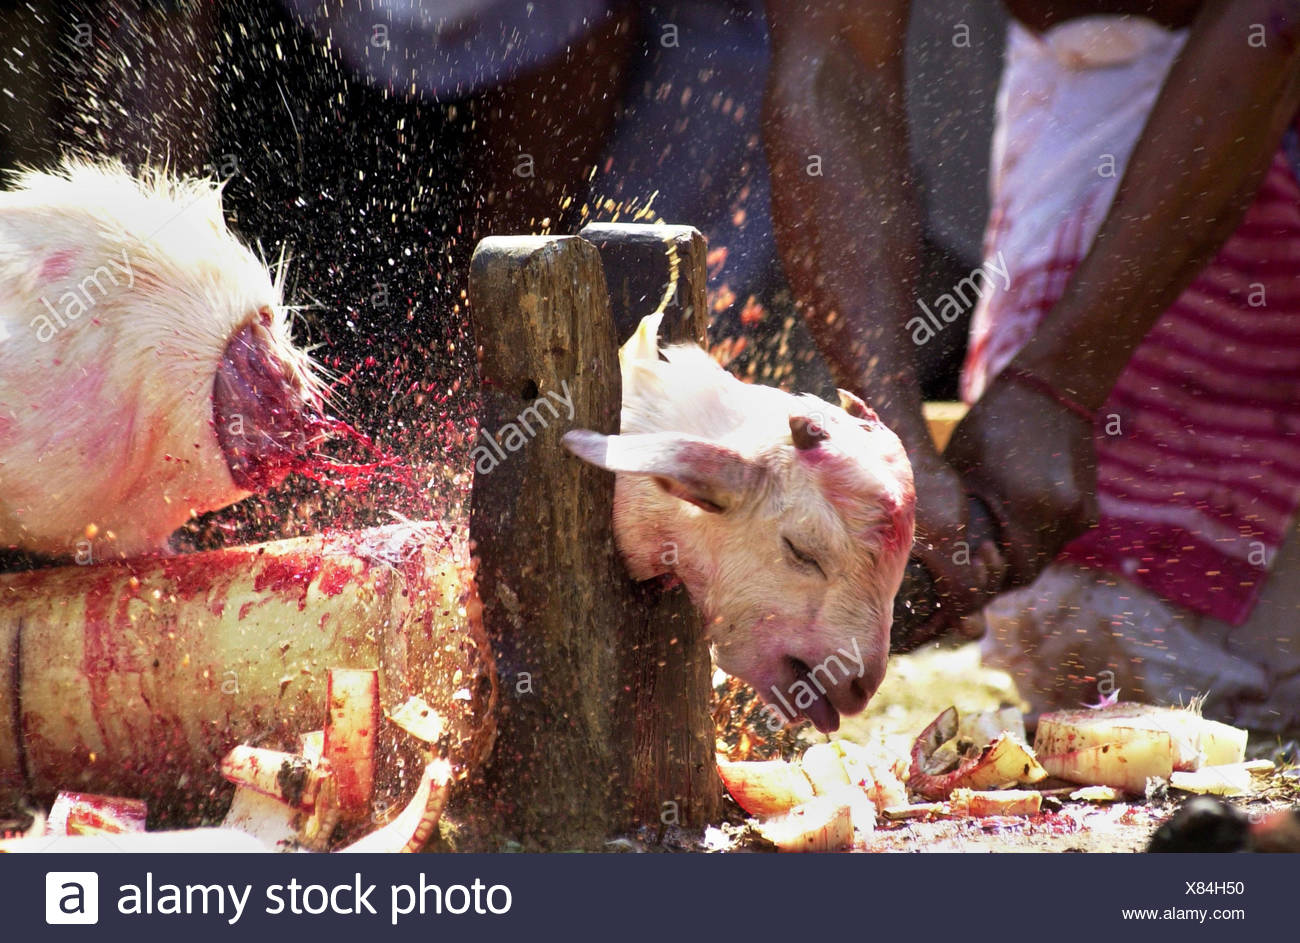 Slaughter house - Stock Image